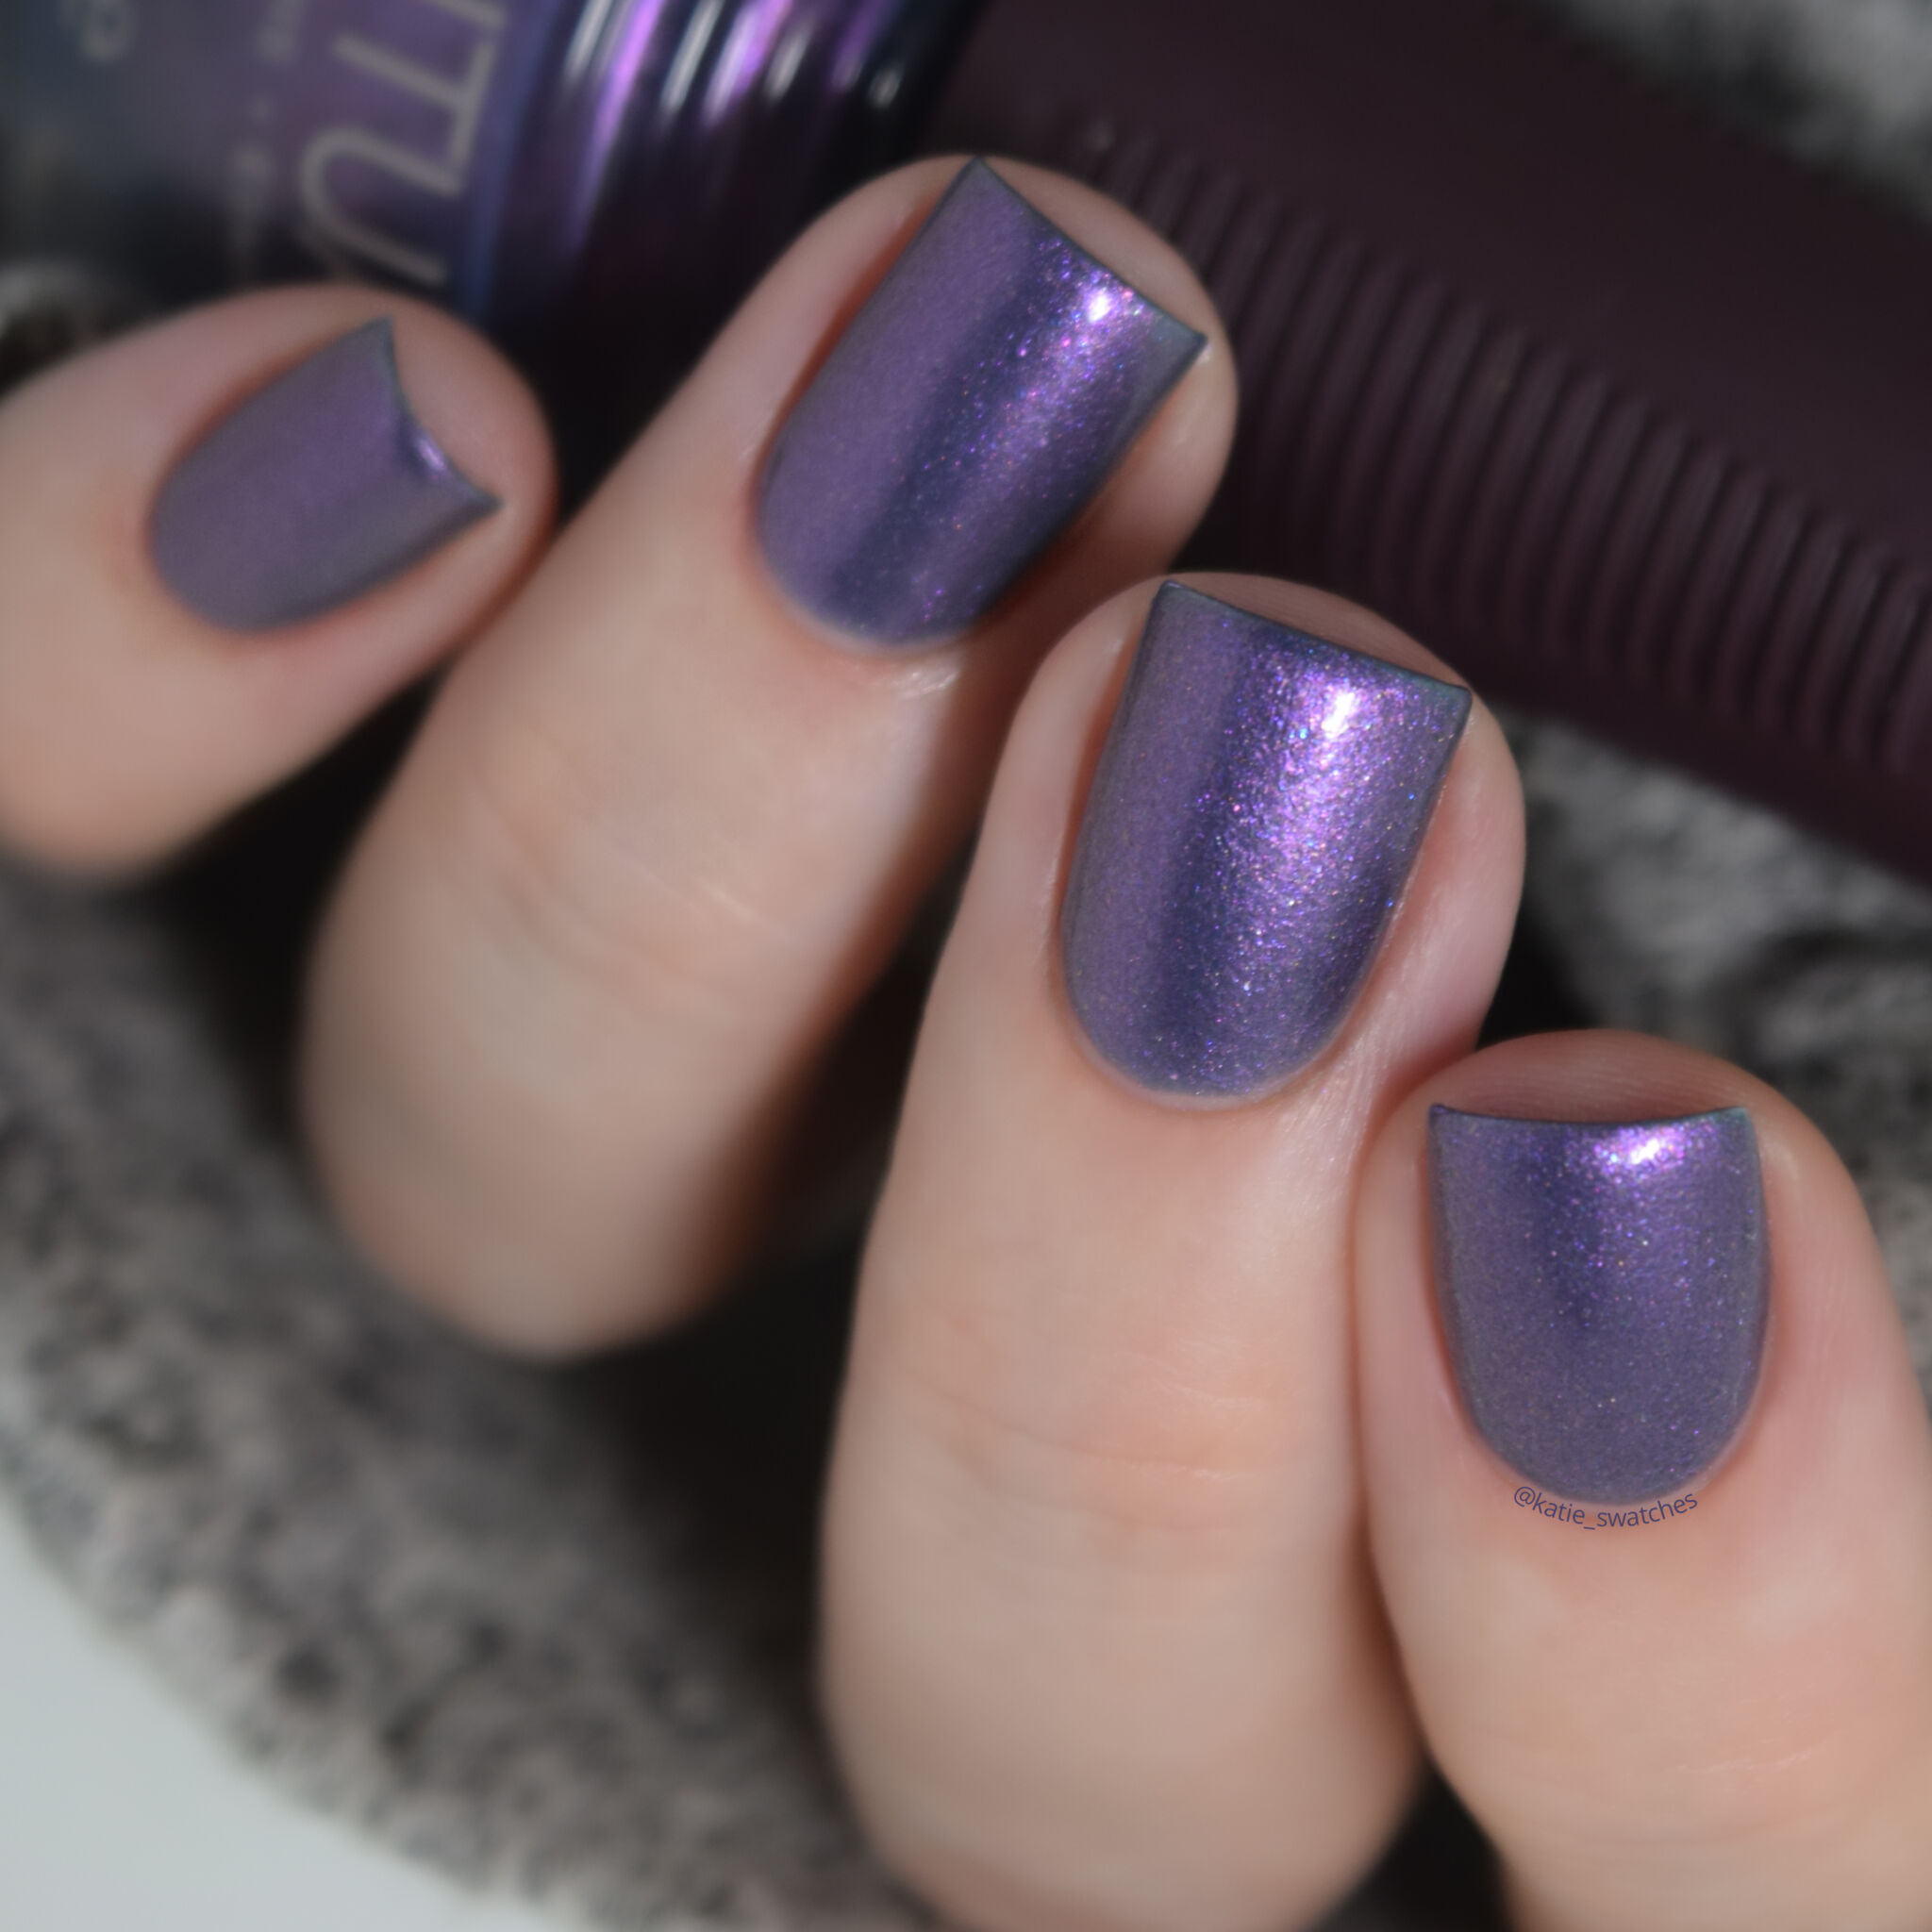 SPARITUAL North Star nail polish swatch grey-purple color with pink shimmer - Explore Collection Spring 2014